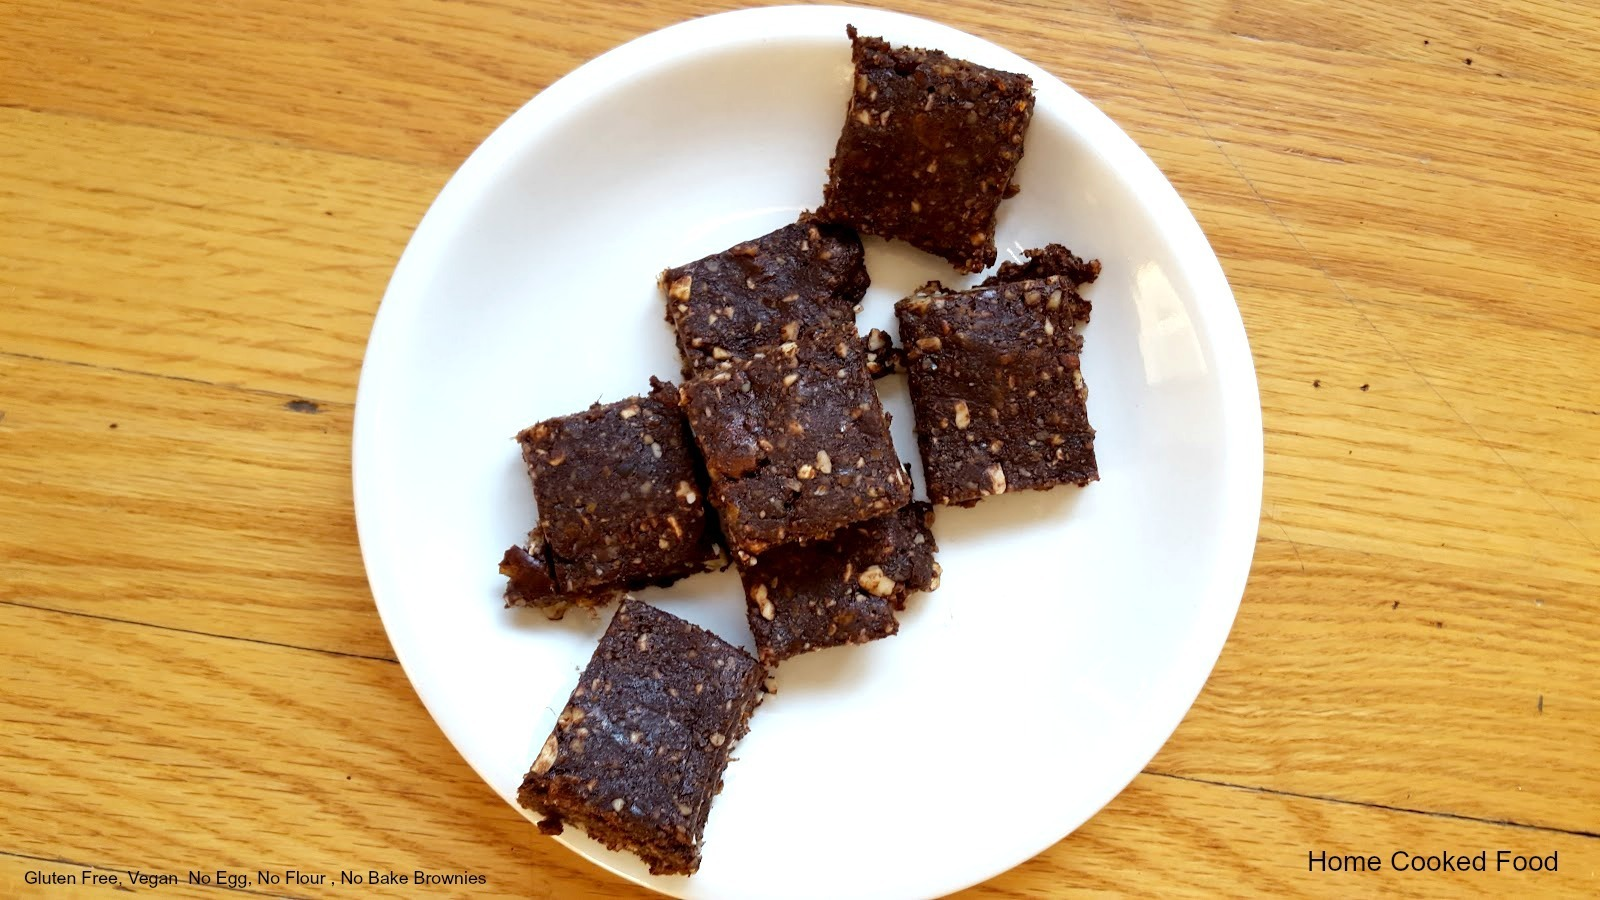 Gluten Free, Vegan  No Egg, No Flour , No Bake Brownies